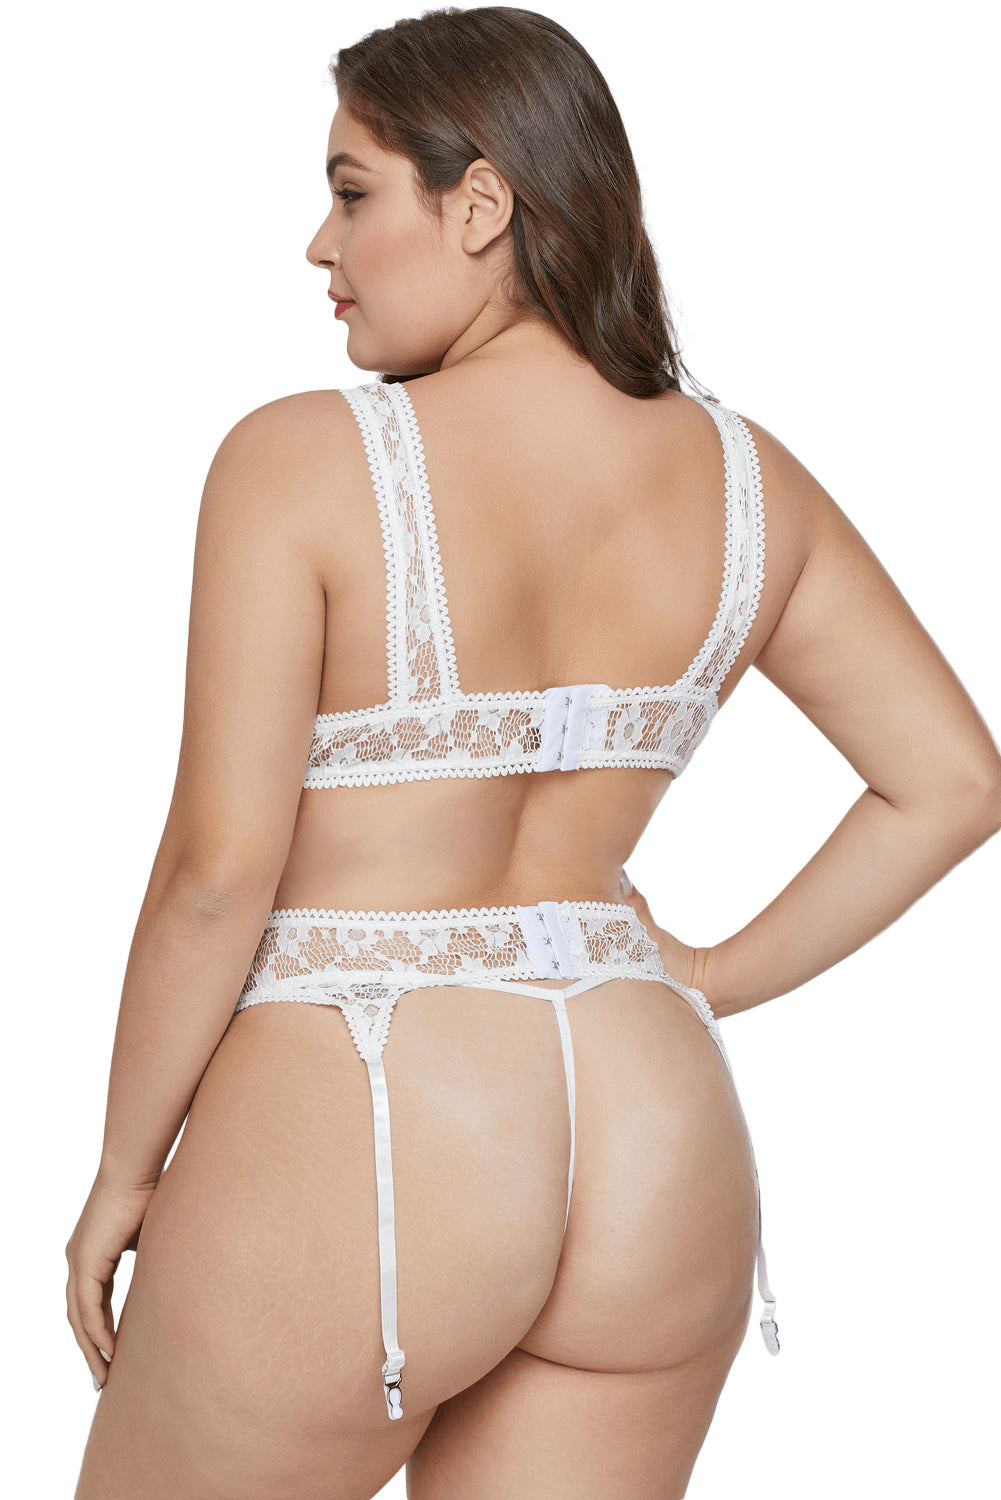 plus size Lingerie Brooklyn Lingerie Set